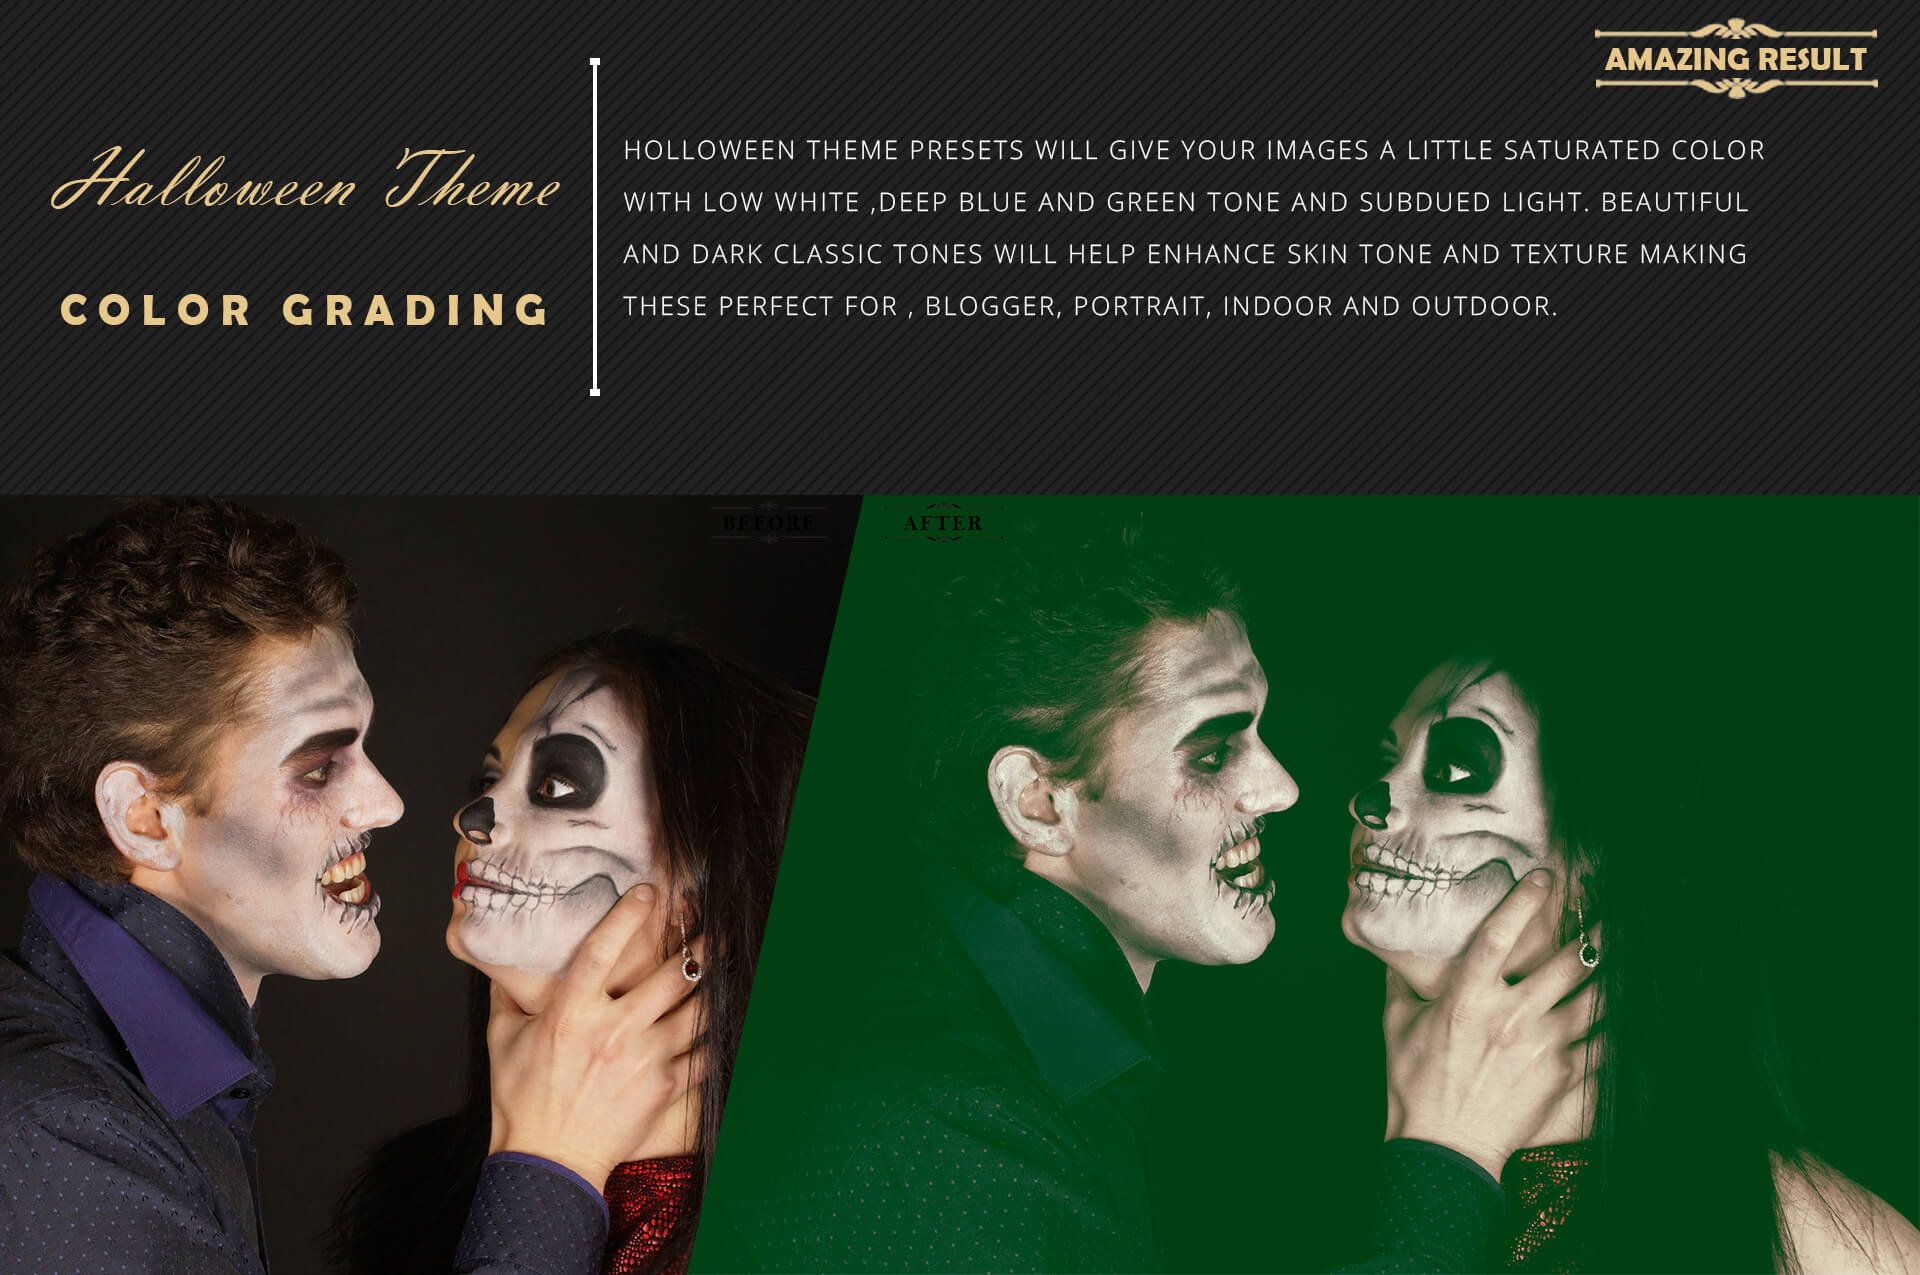 Halloween Theme Collection Color Grading Lightroom presets example image 4